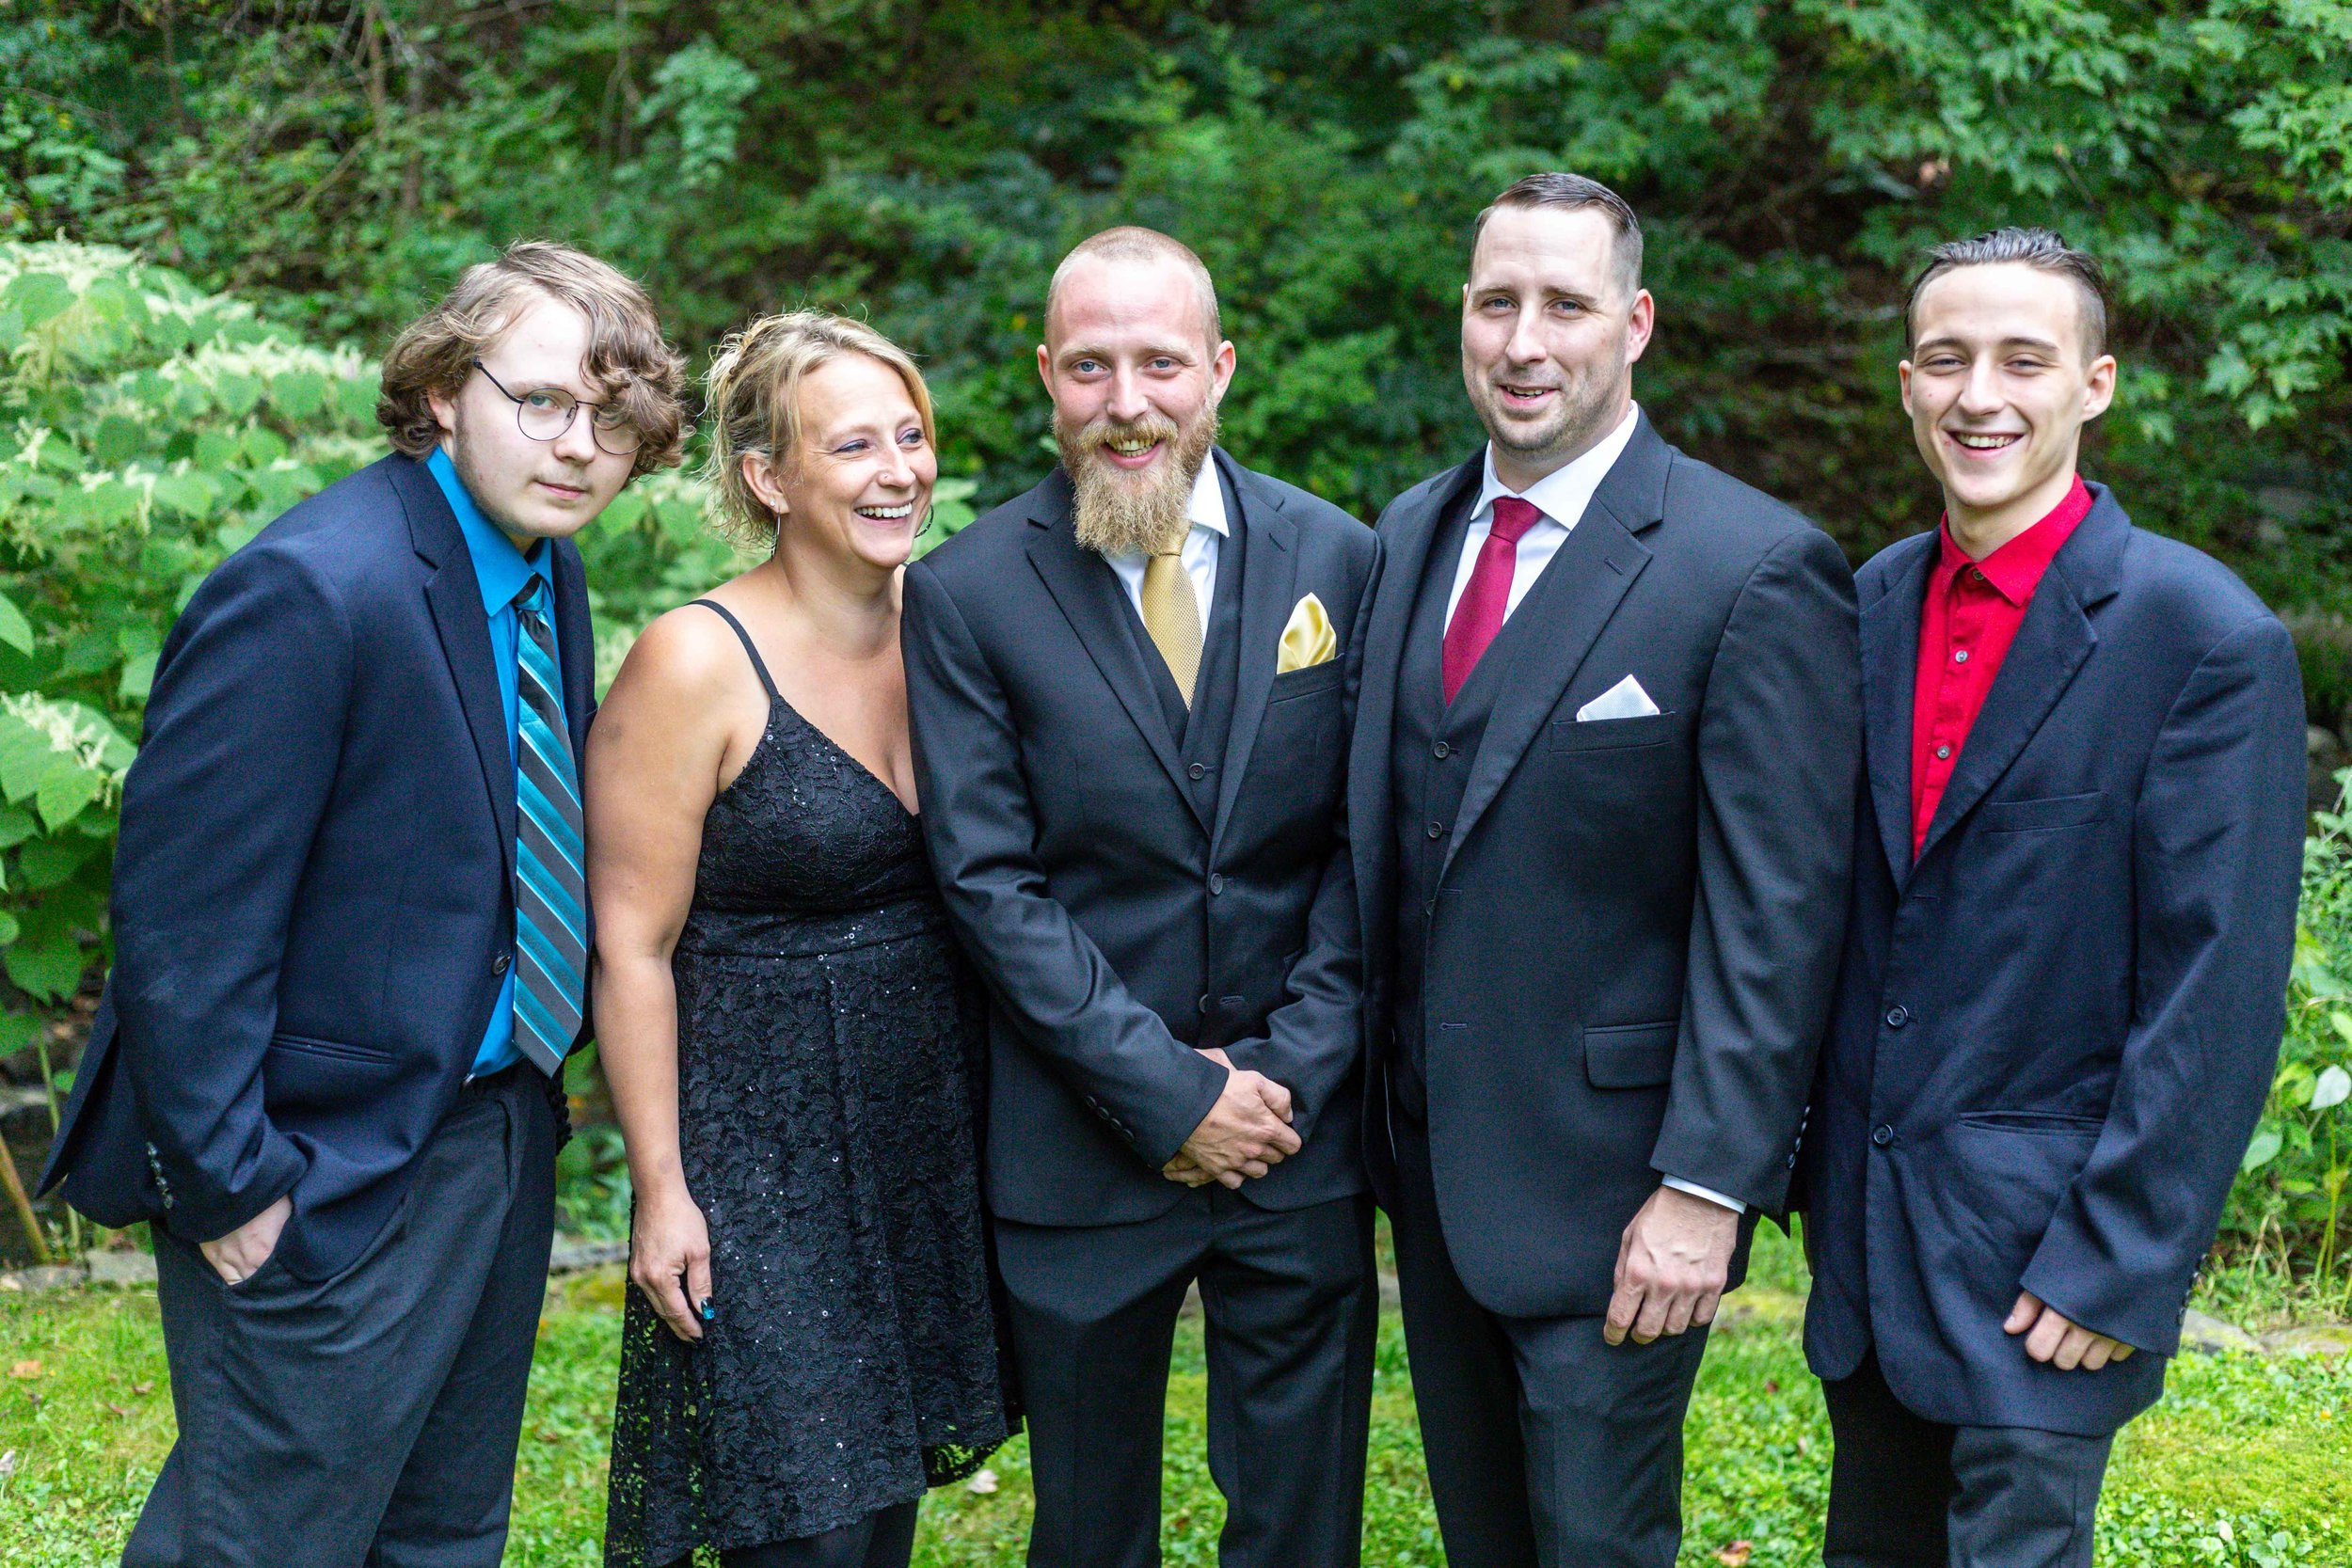 Backyard Homebrew Wedding in Branchville NJ by Dan Schenker Photography-12.jpg